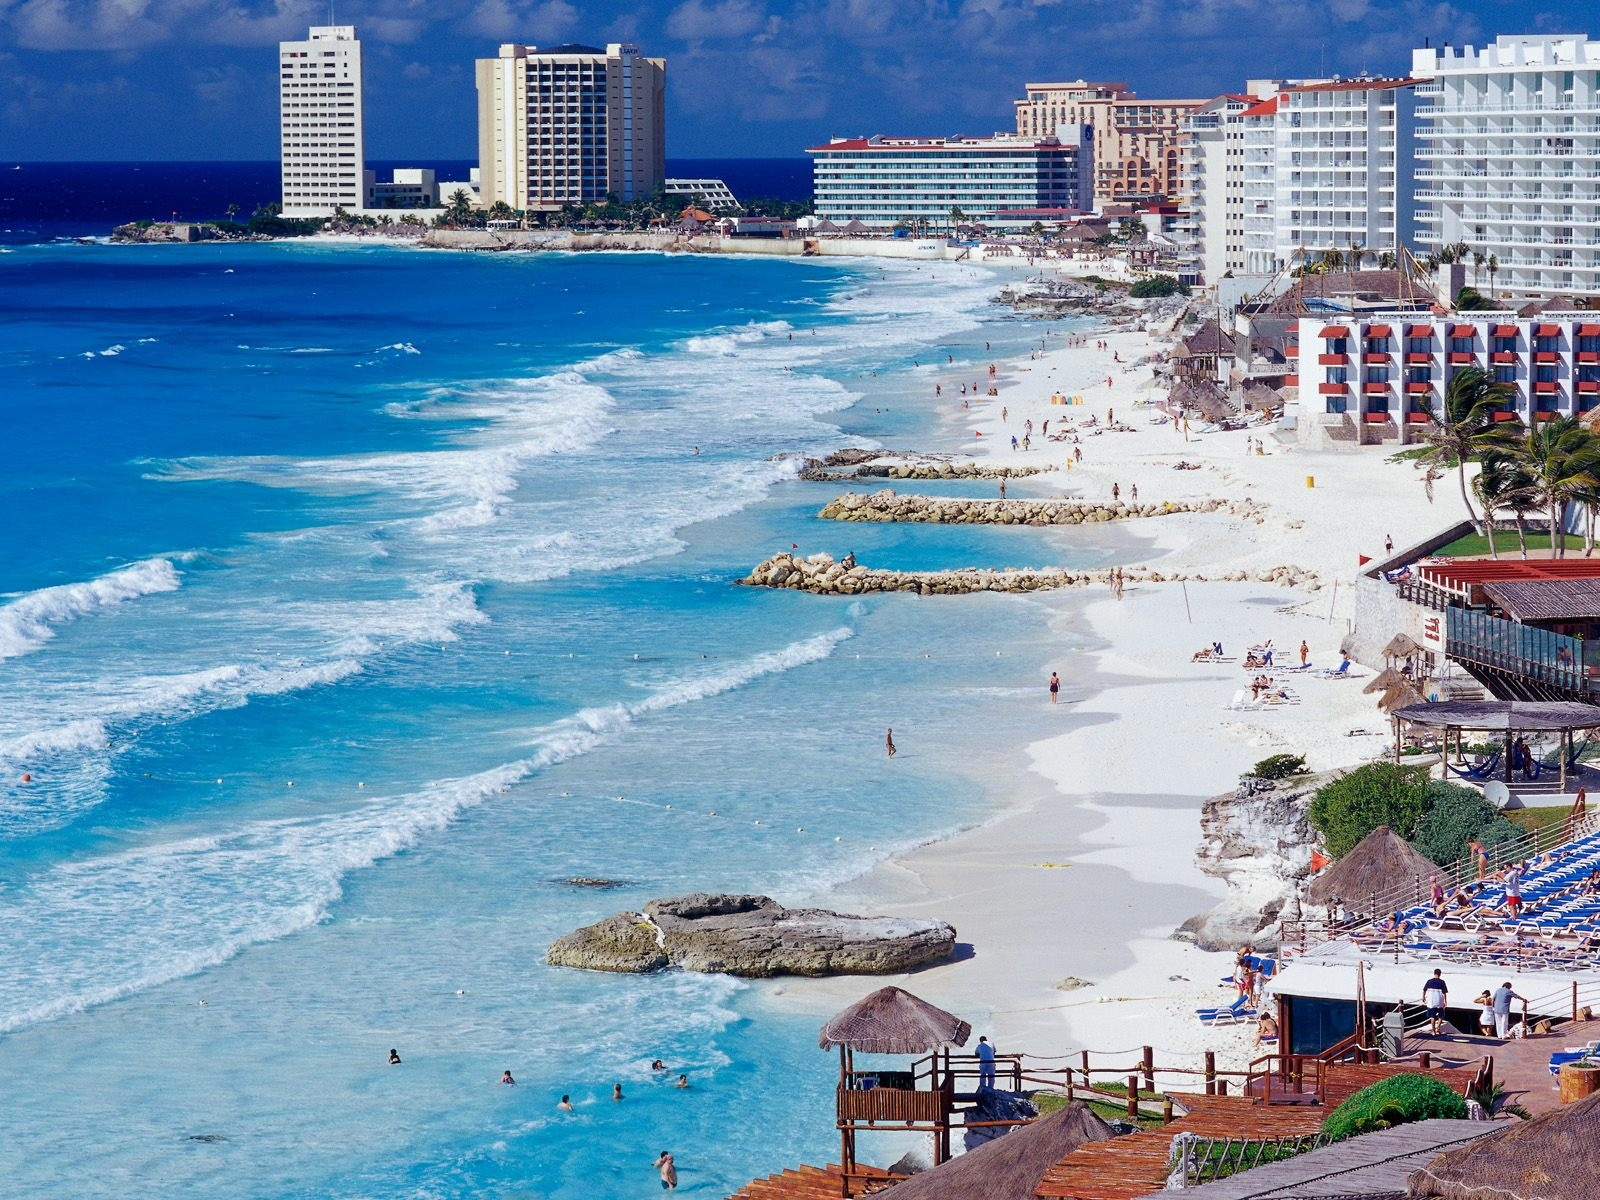 cancun-shoreline-mexico-is-a-HD-posted-in-Travel-World-category-wallpaper-wp3403720